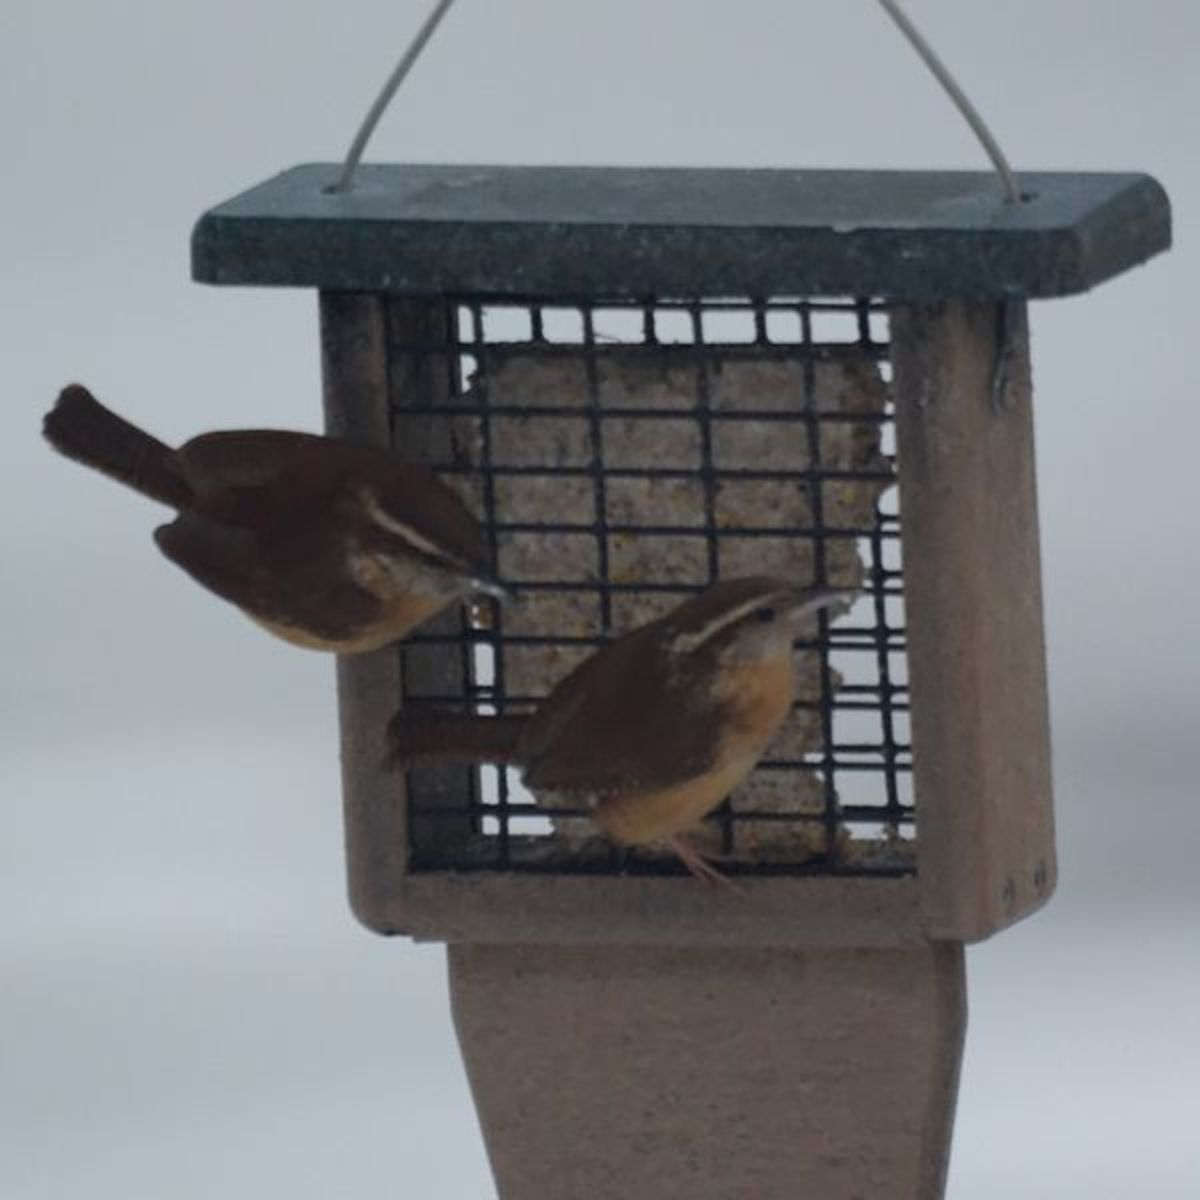 Carolina Wrens will visit feeding stations, especially in winter. They love to snack on suet during the cold months.